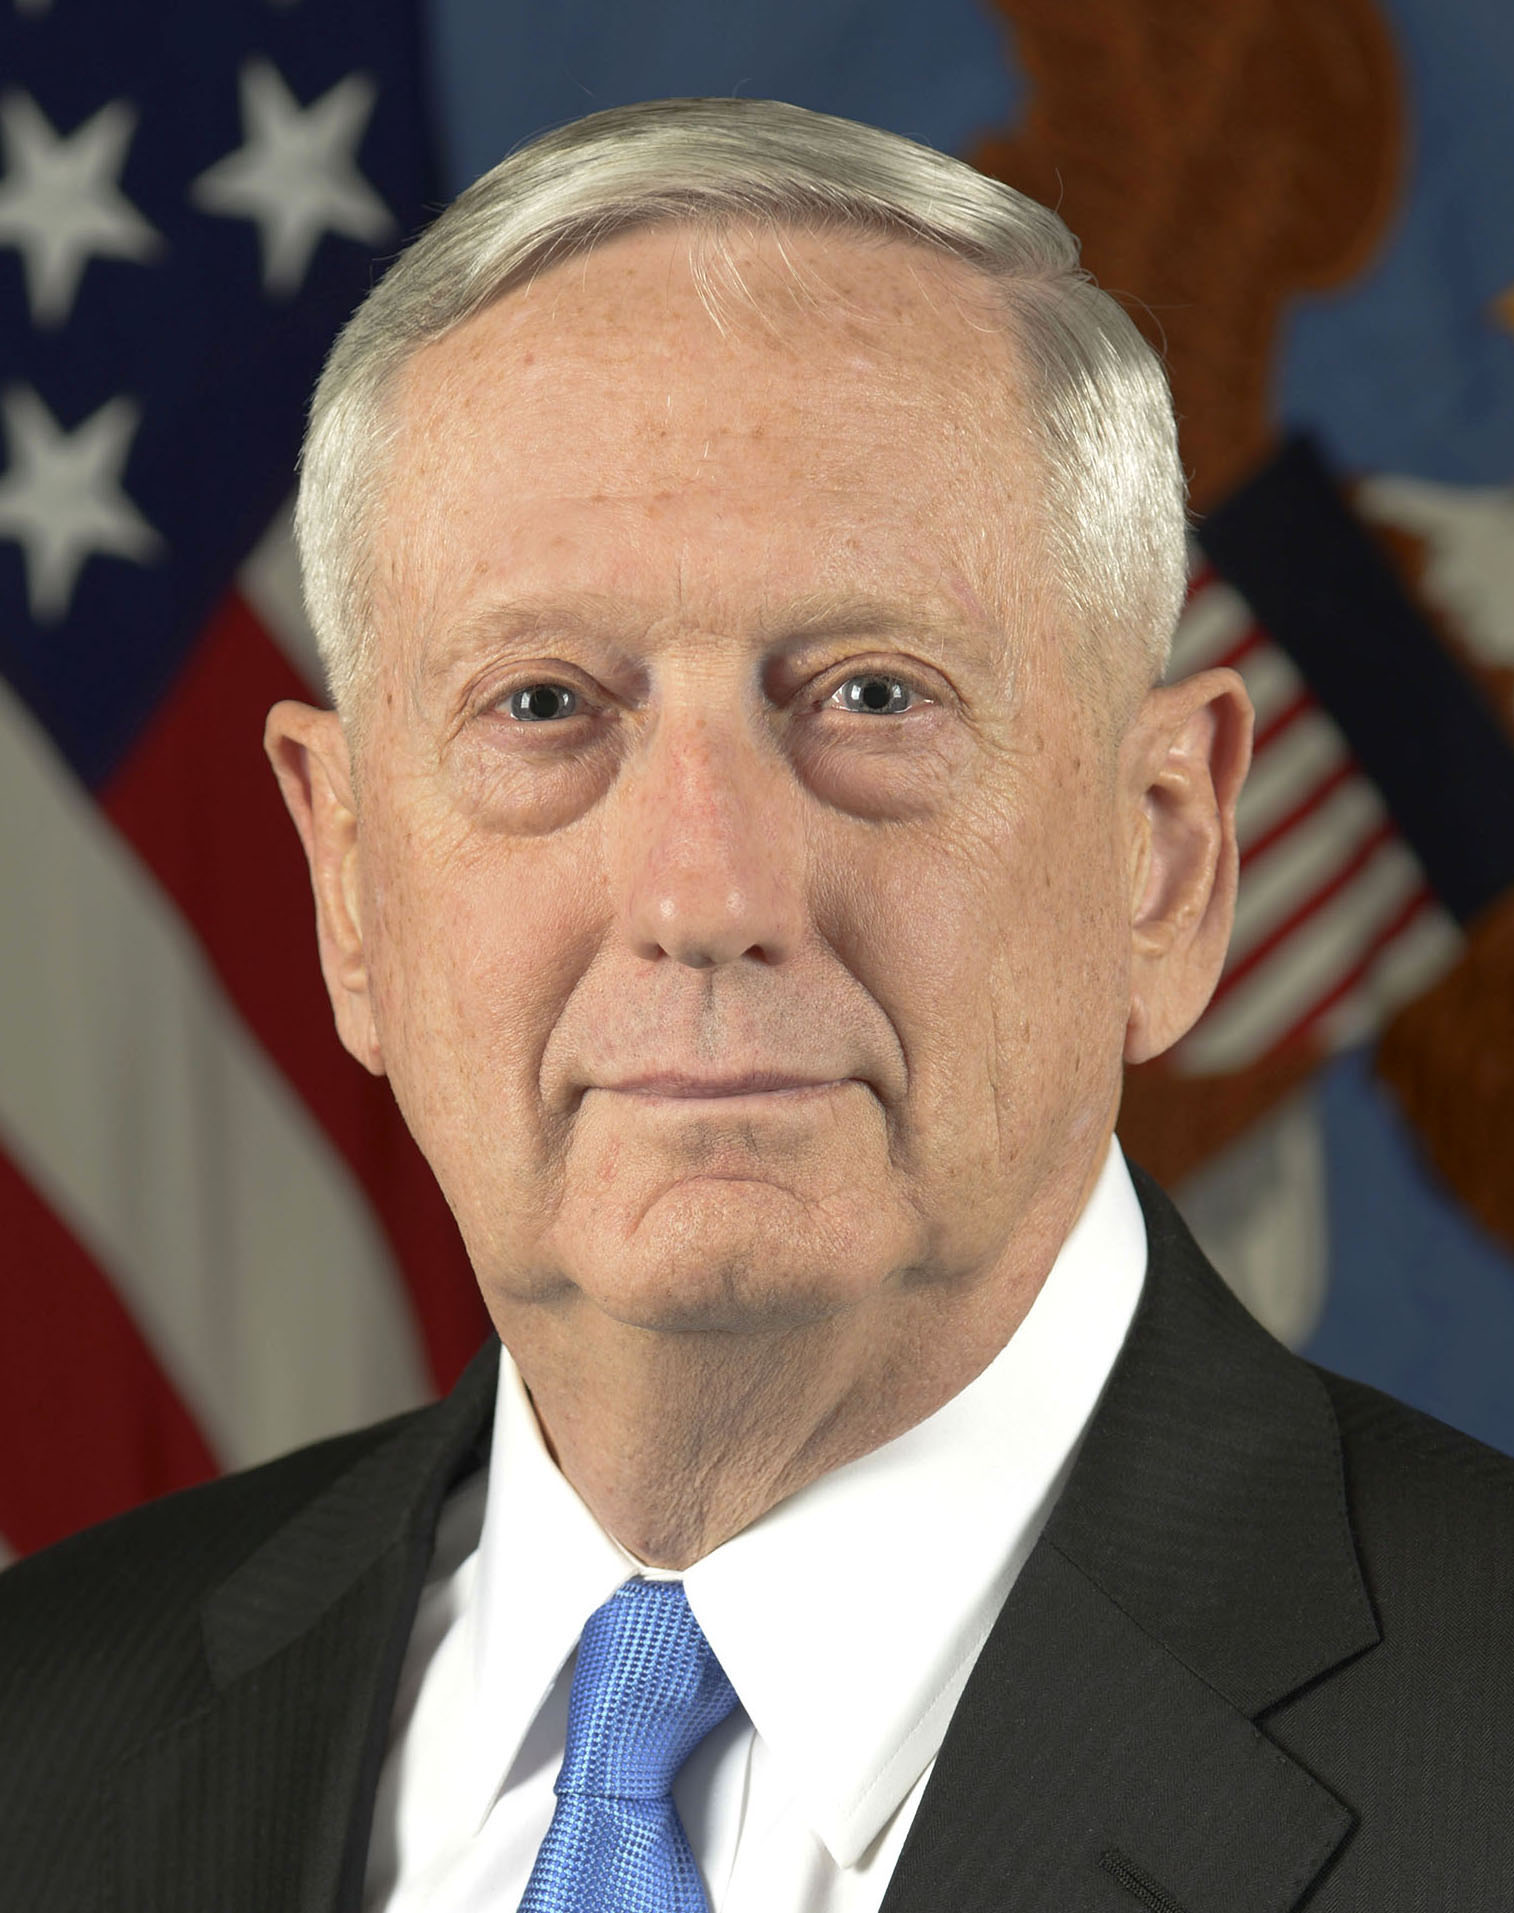 Retired United States of America Secretary of Defense Marine General James N. Mattis